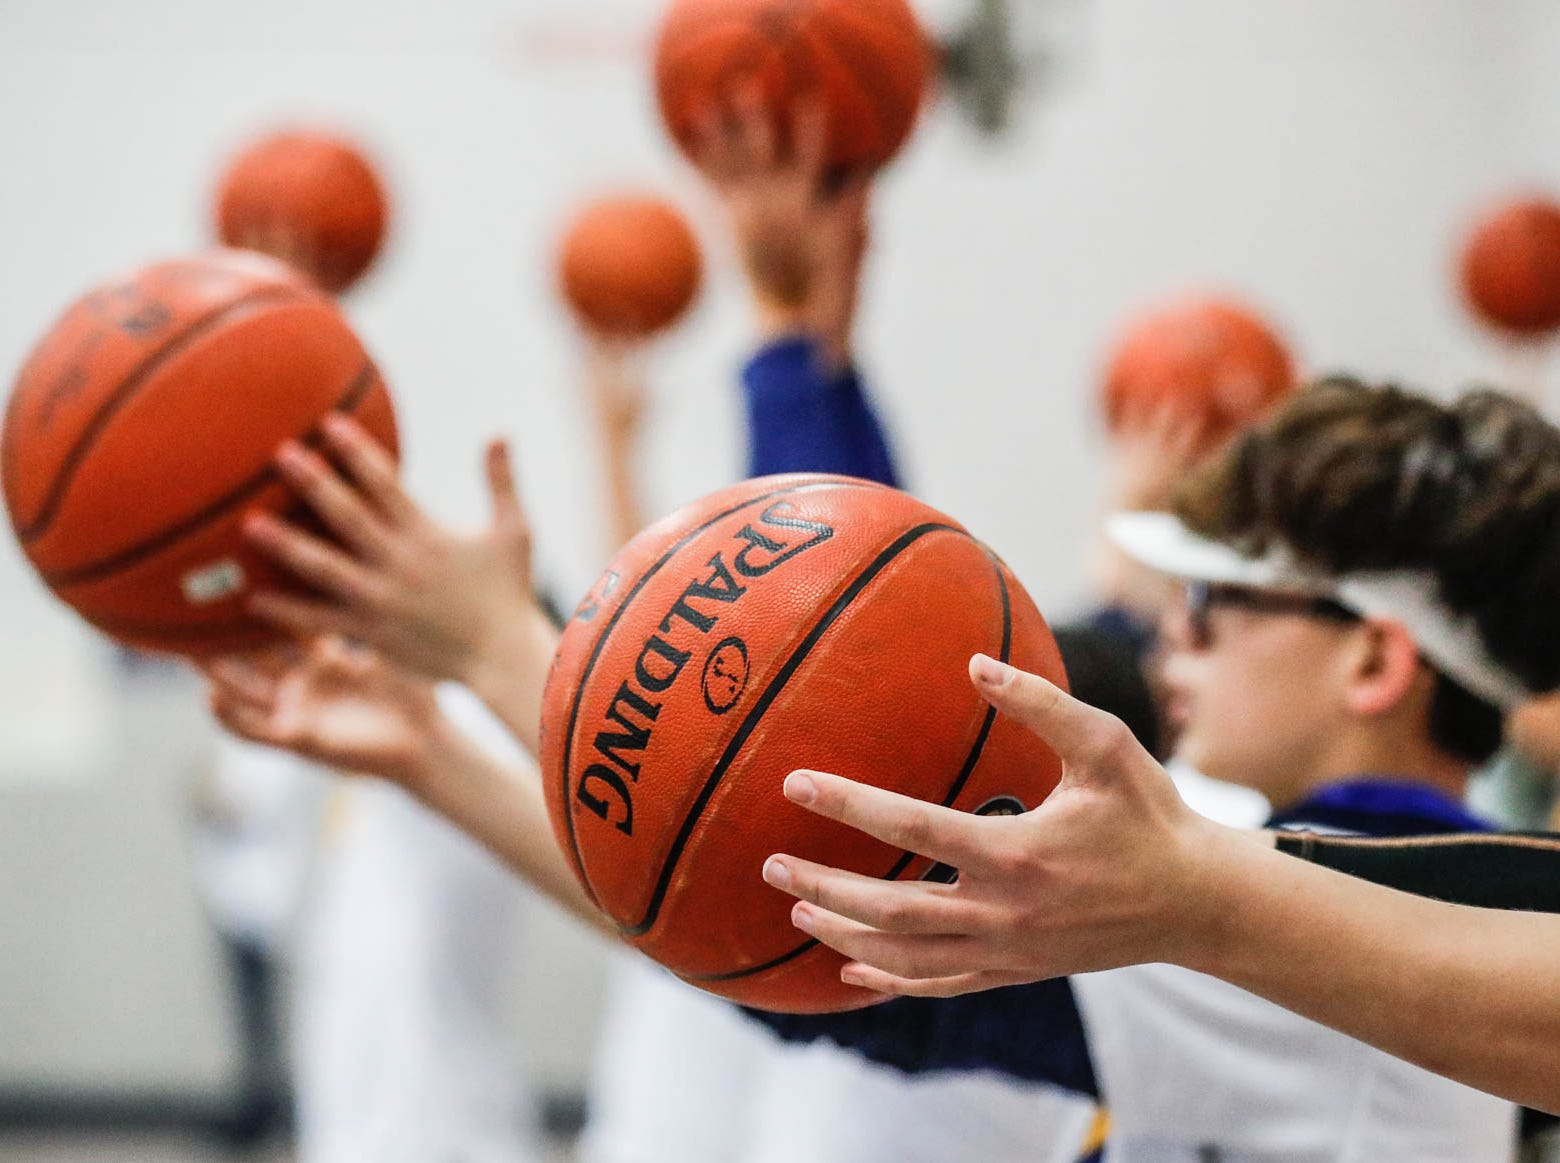 Children at Concord Neighborhood Center take part in a Jr. Indiana Pacers clinic, which included ball handling drills and a surprise visit by Indiana Pacers guard Victor Oladipo on Monday, Jan. 14, 2019.